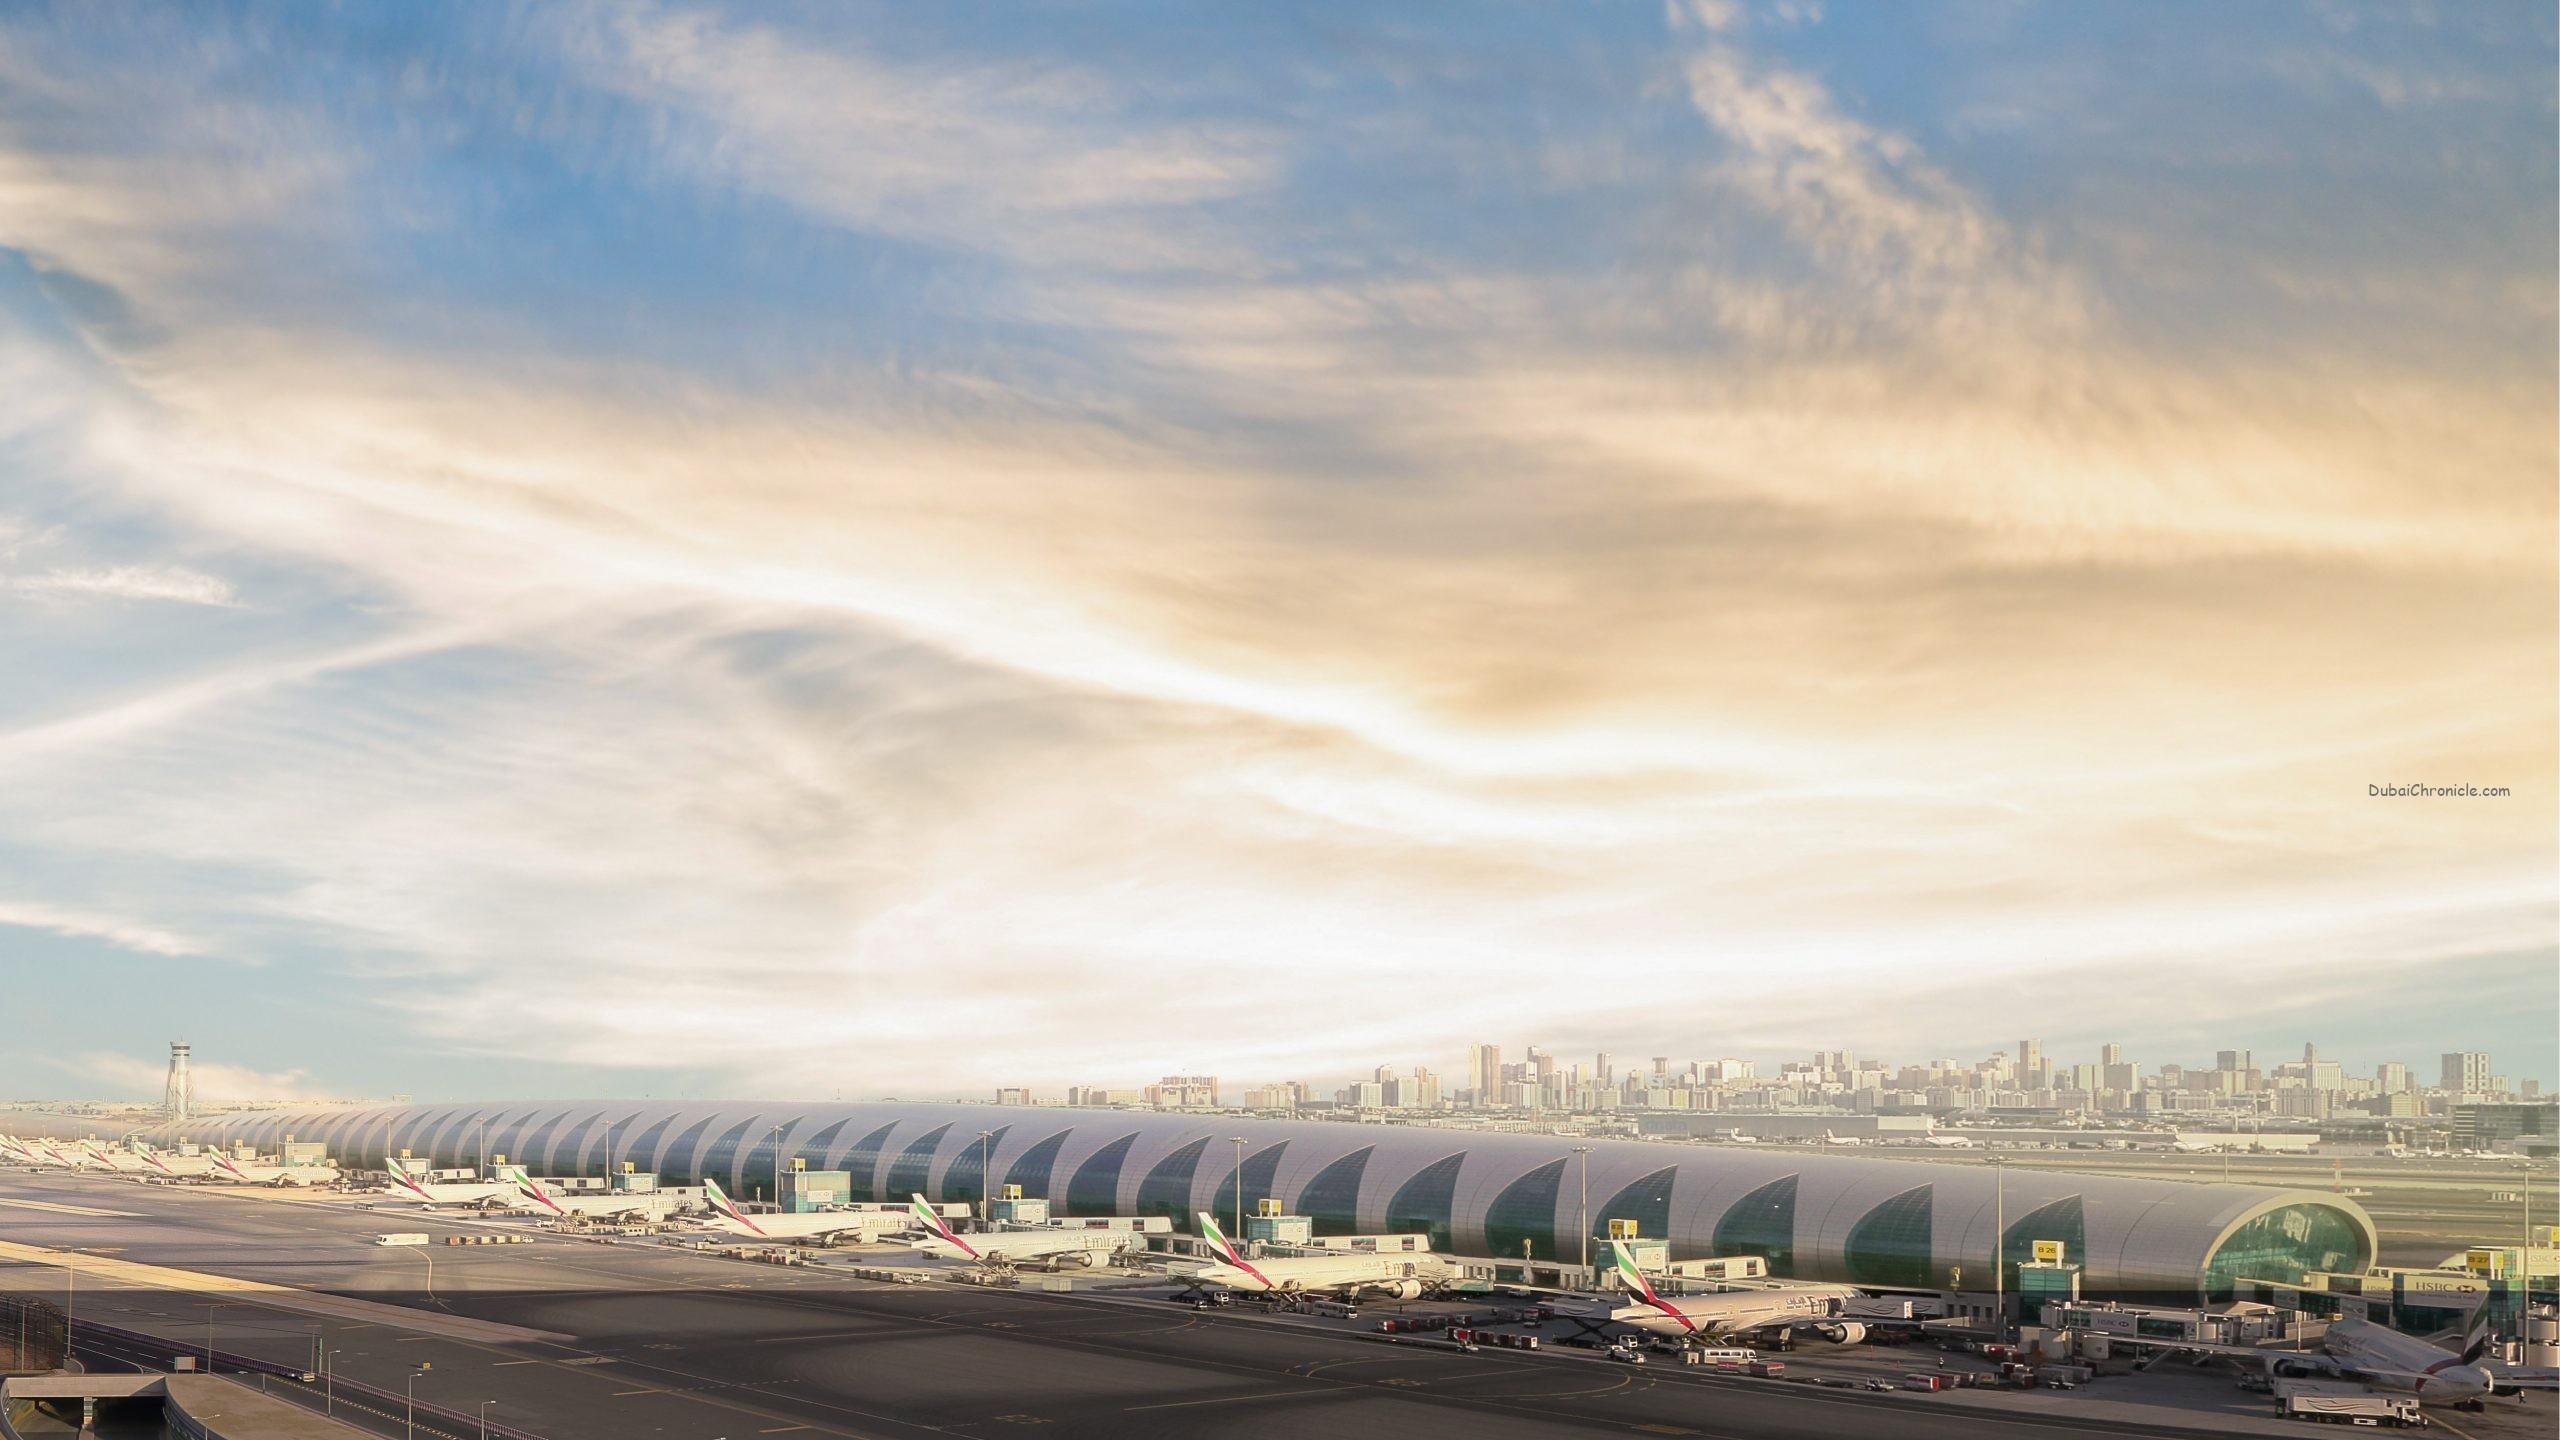 The Emirates Group today announced its first year of loss